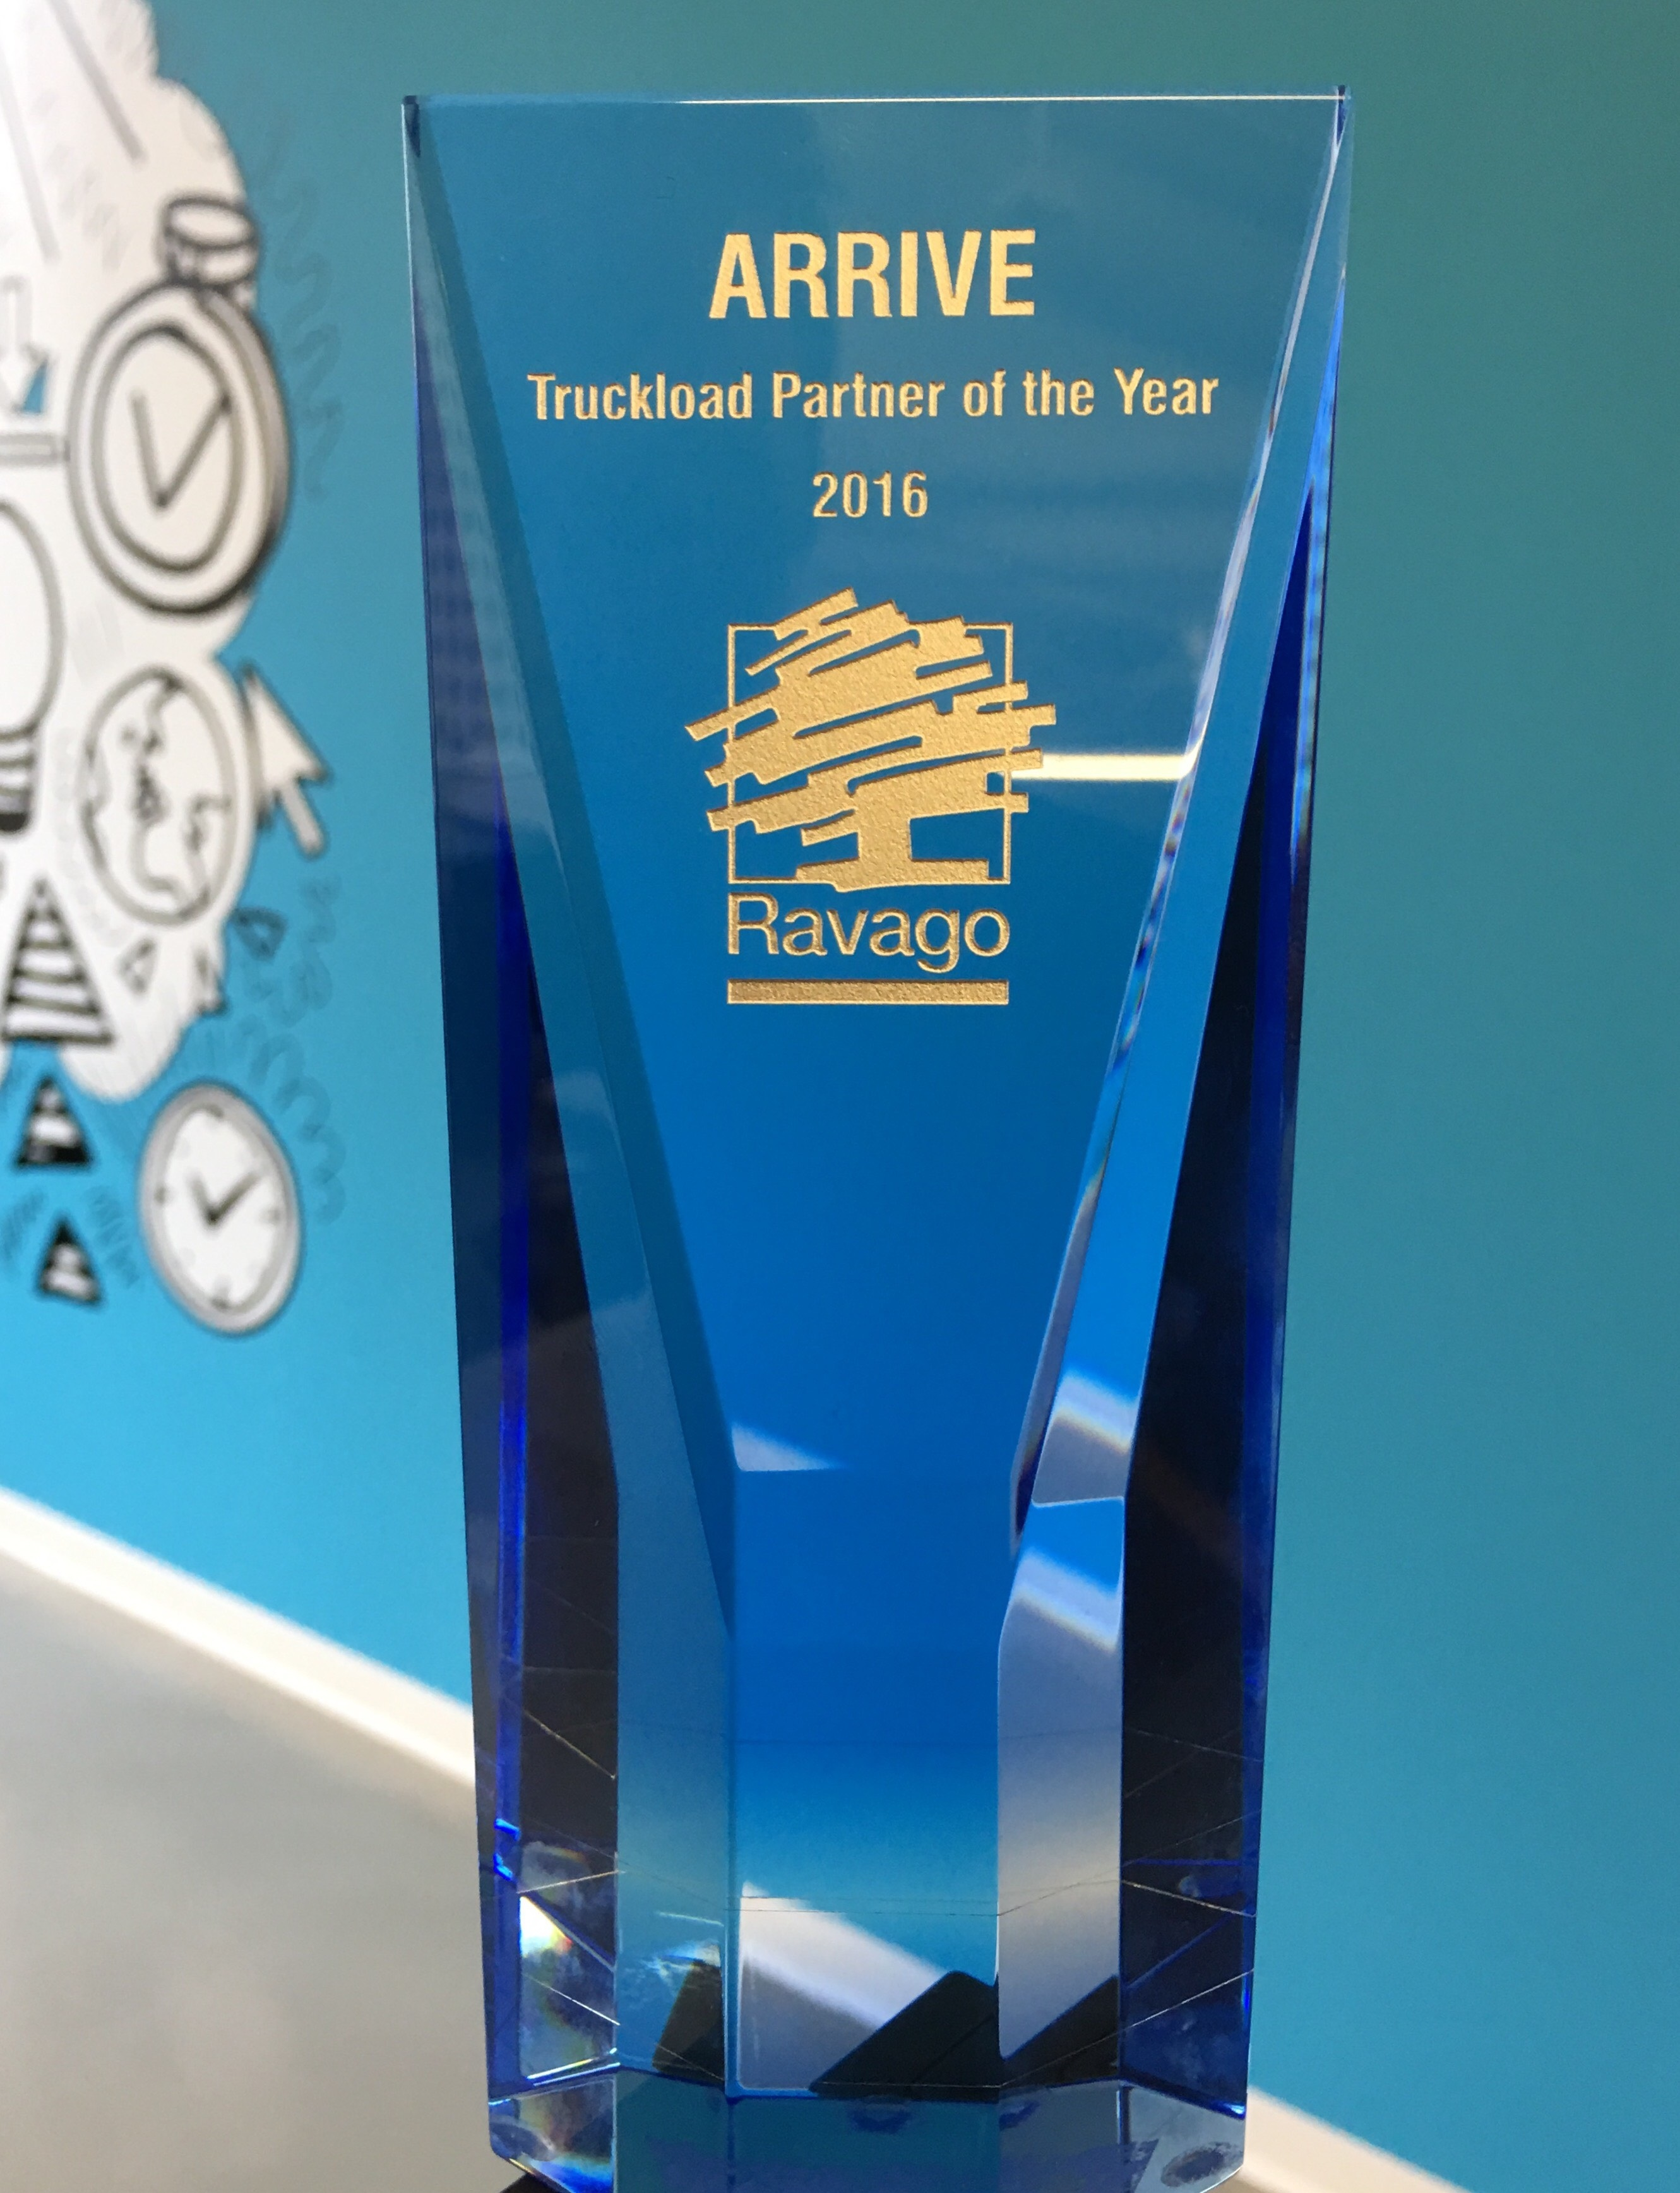 2016 Truckload Partner of the Year (Photo: Business Wire)